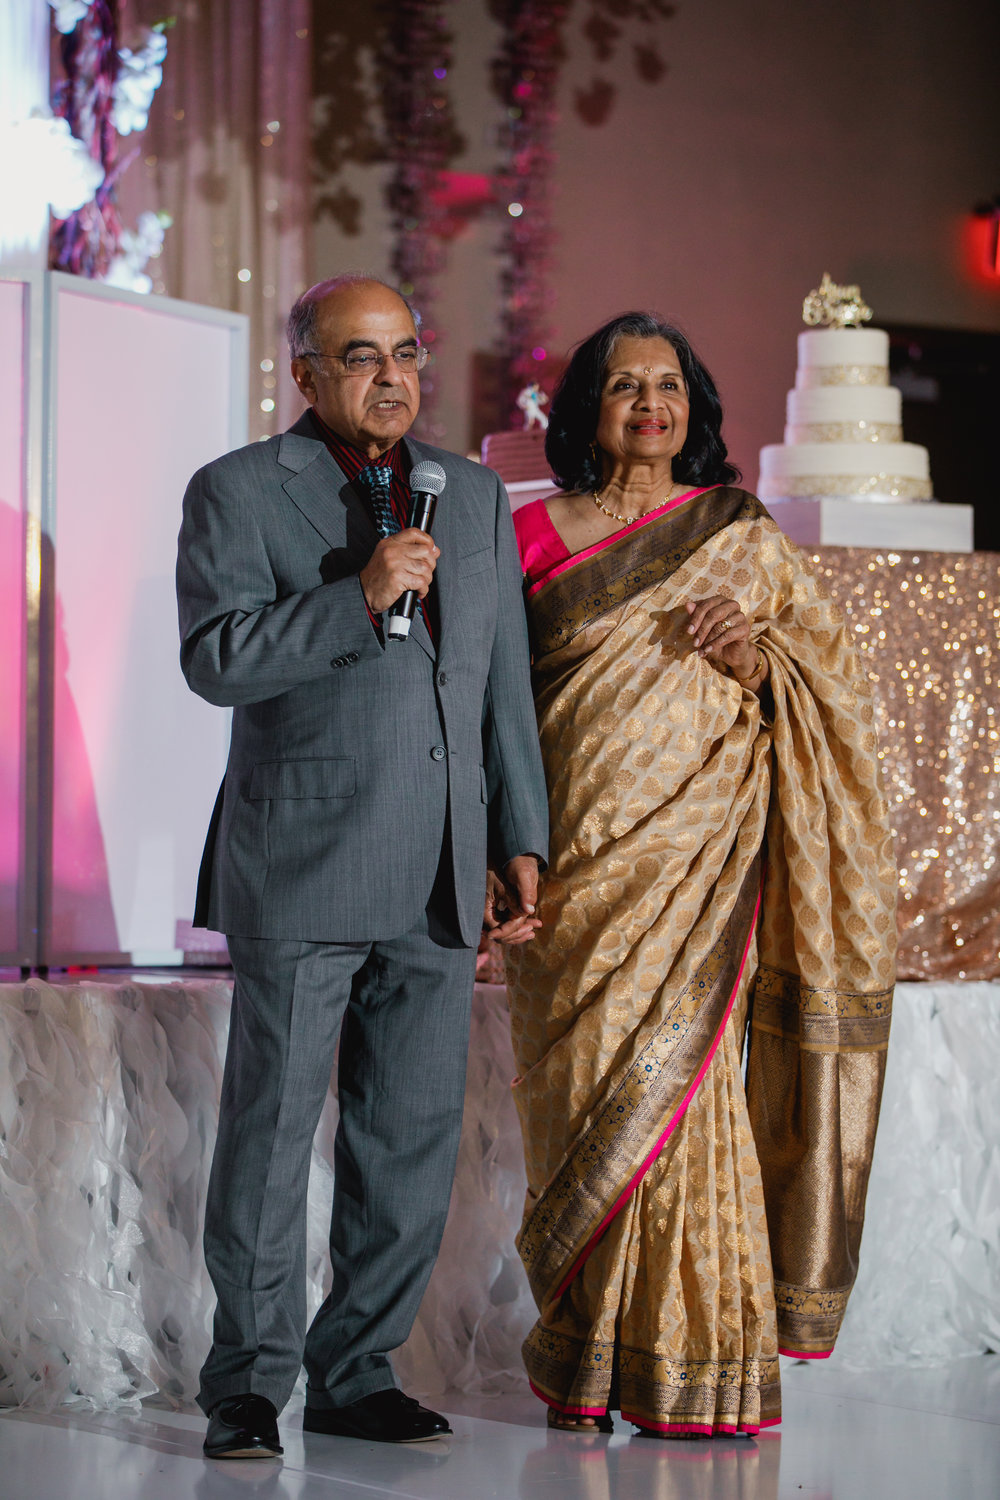 Indian wedding - Wedding photographer - Dallas Photographer - South Asian Wedding -  elizalde photography-75.jpg